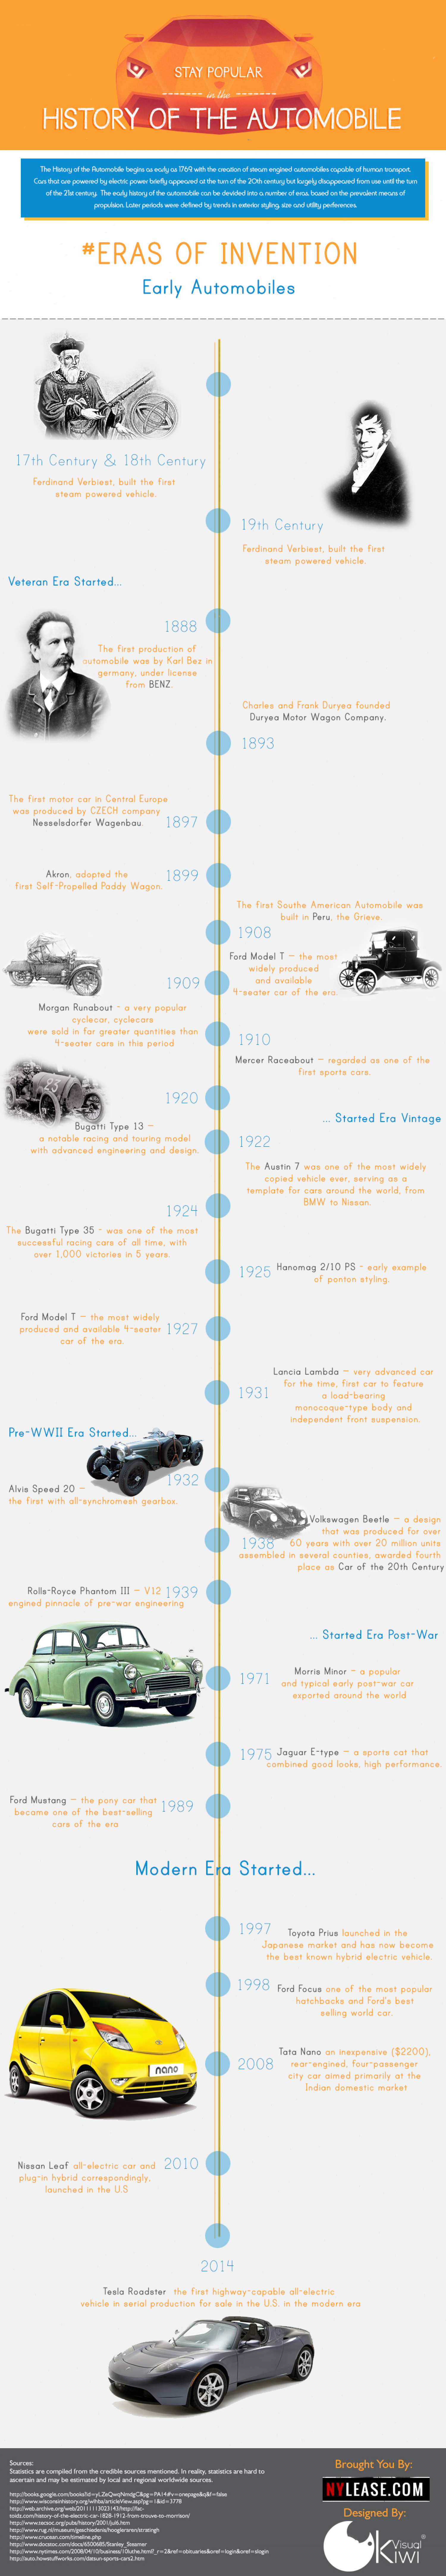 History of the Automobiles Infographic